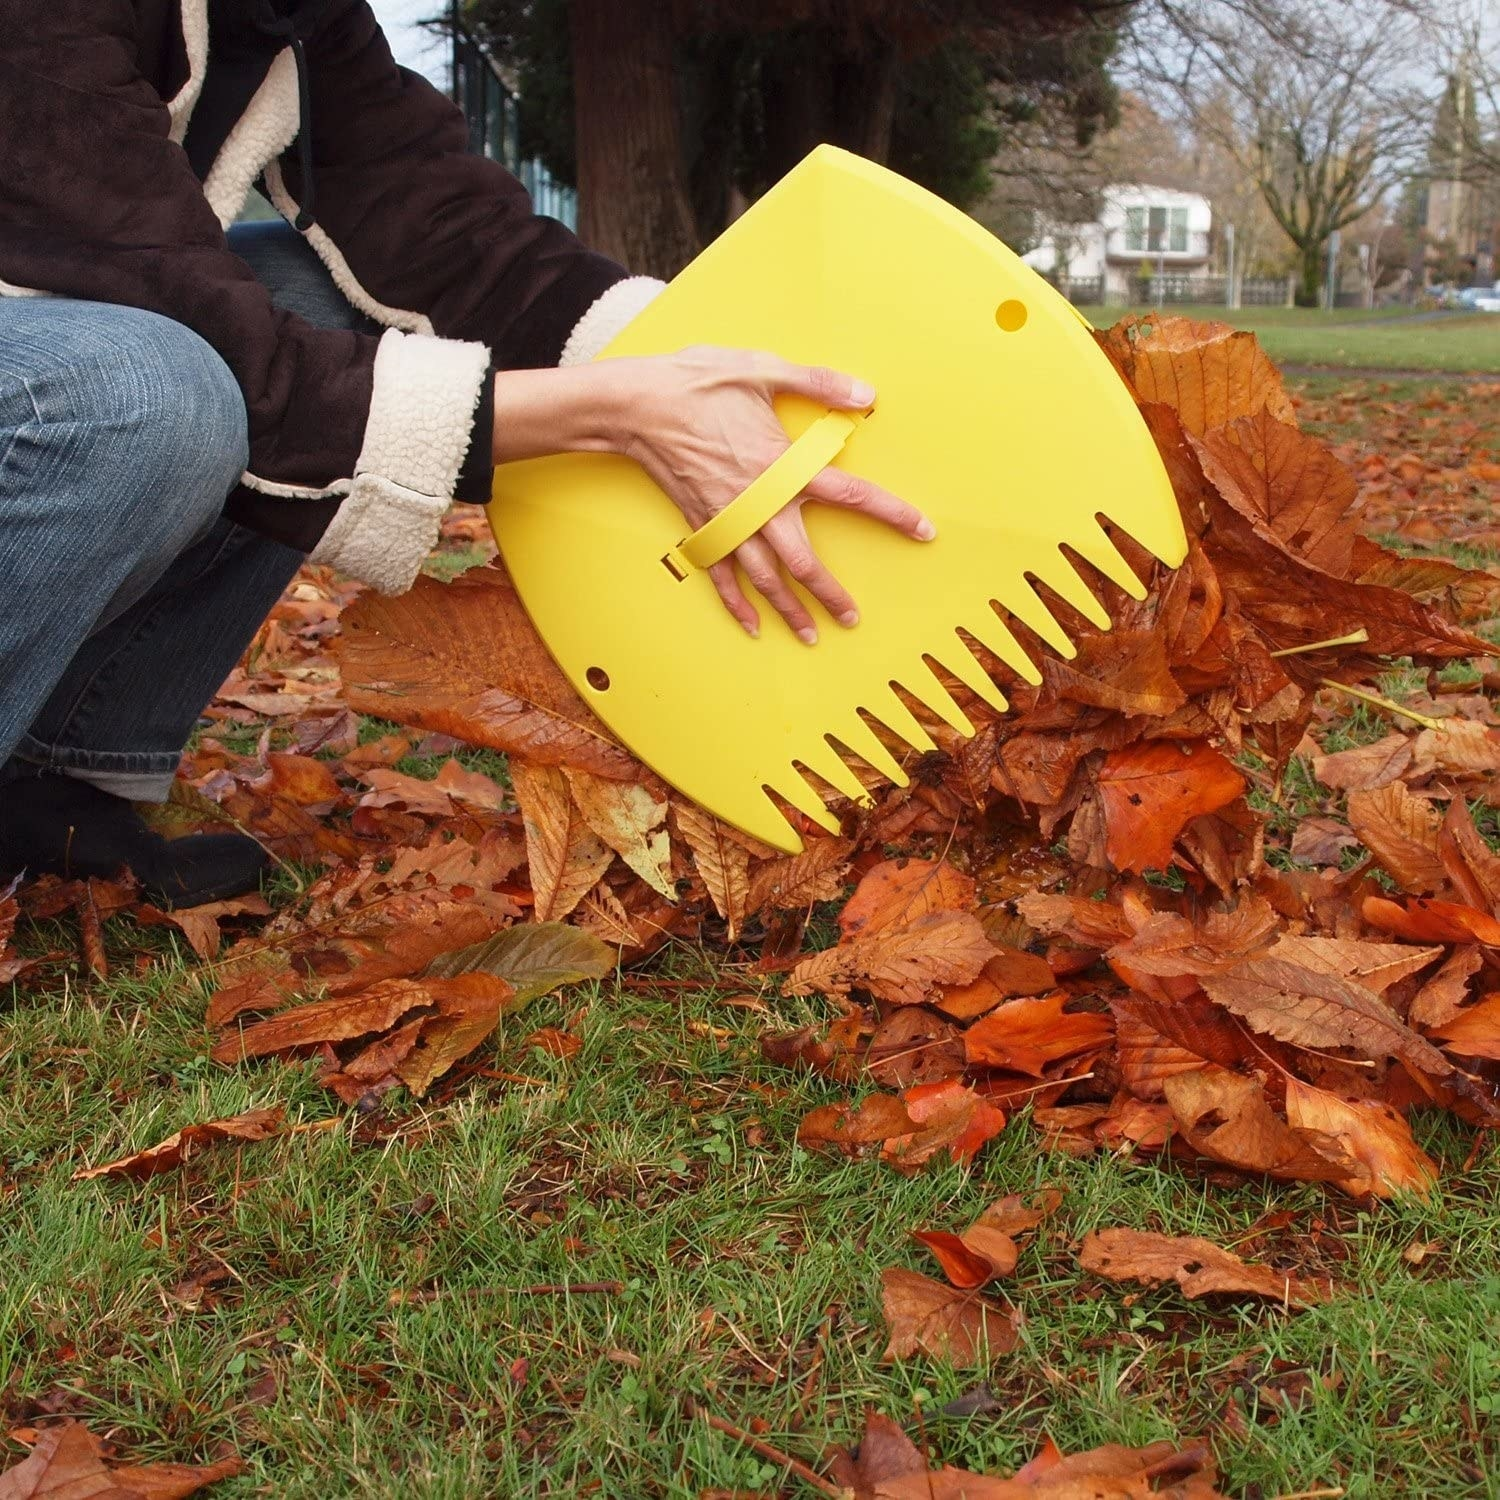 A person picking up a pile of leaves with huge claw-like leaf scoops on their hands